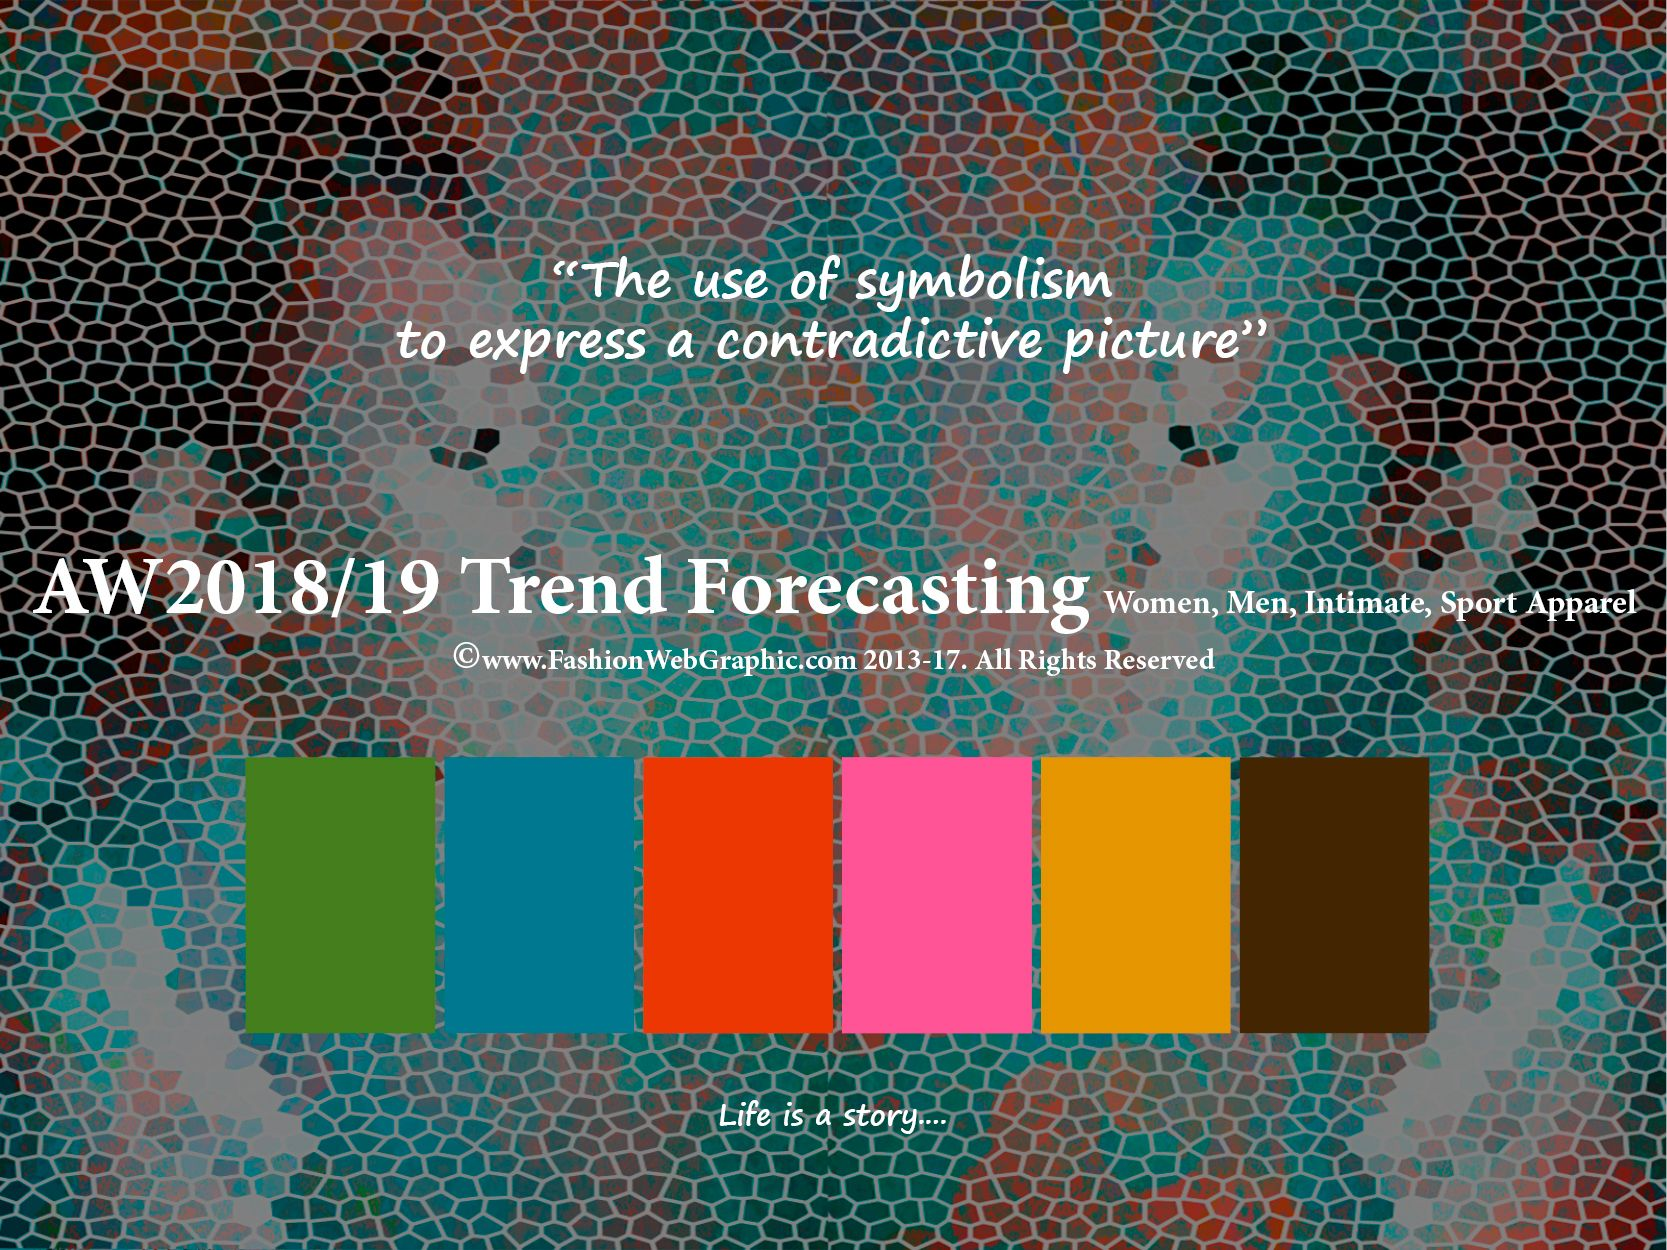 Autumn Winter 2018/2019 trend forecasting is A TREND/COLOR ...